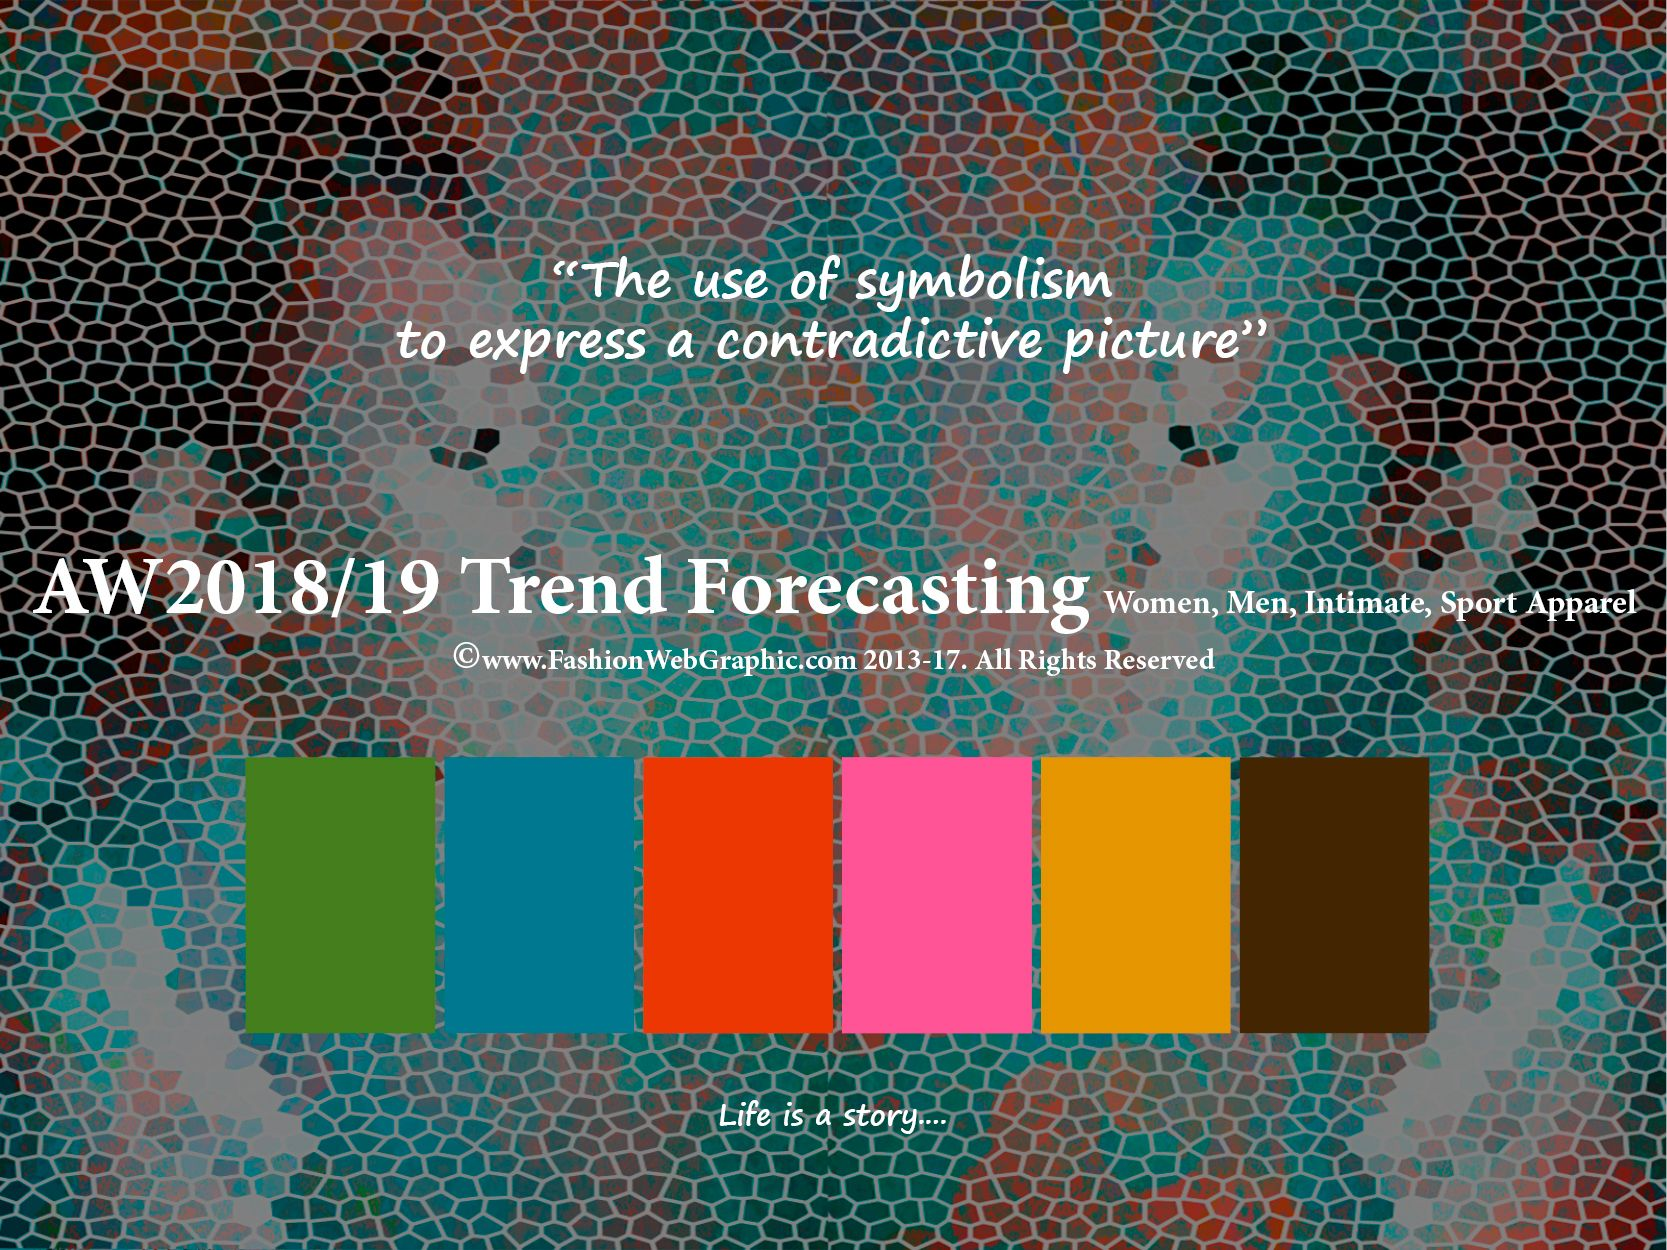 Autumn Winter 2018/2019 trend forecasting is A TREND/COLOR ...